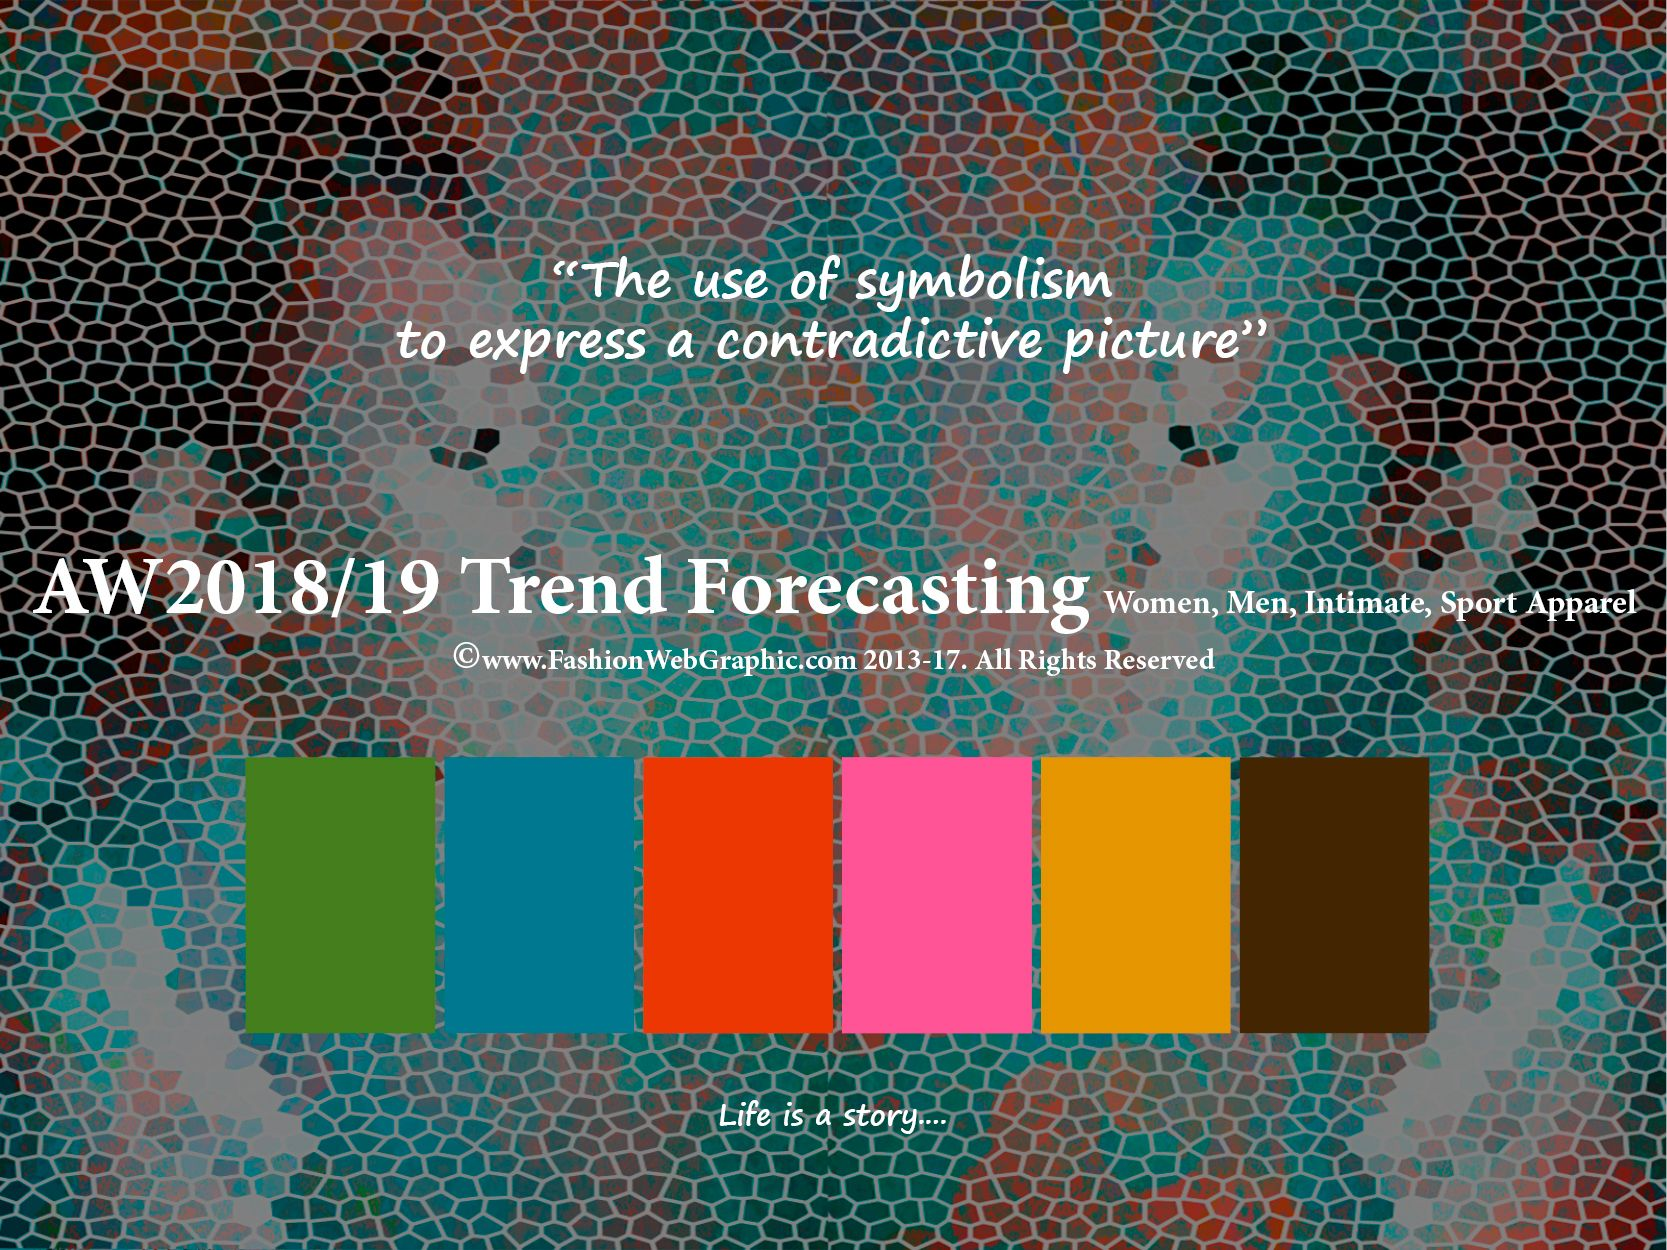 Autumn Winter 2018/2019 trend forecasting is A TREND/COLOR ...